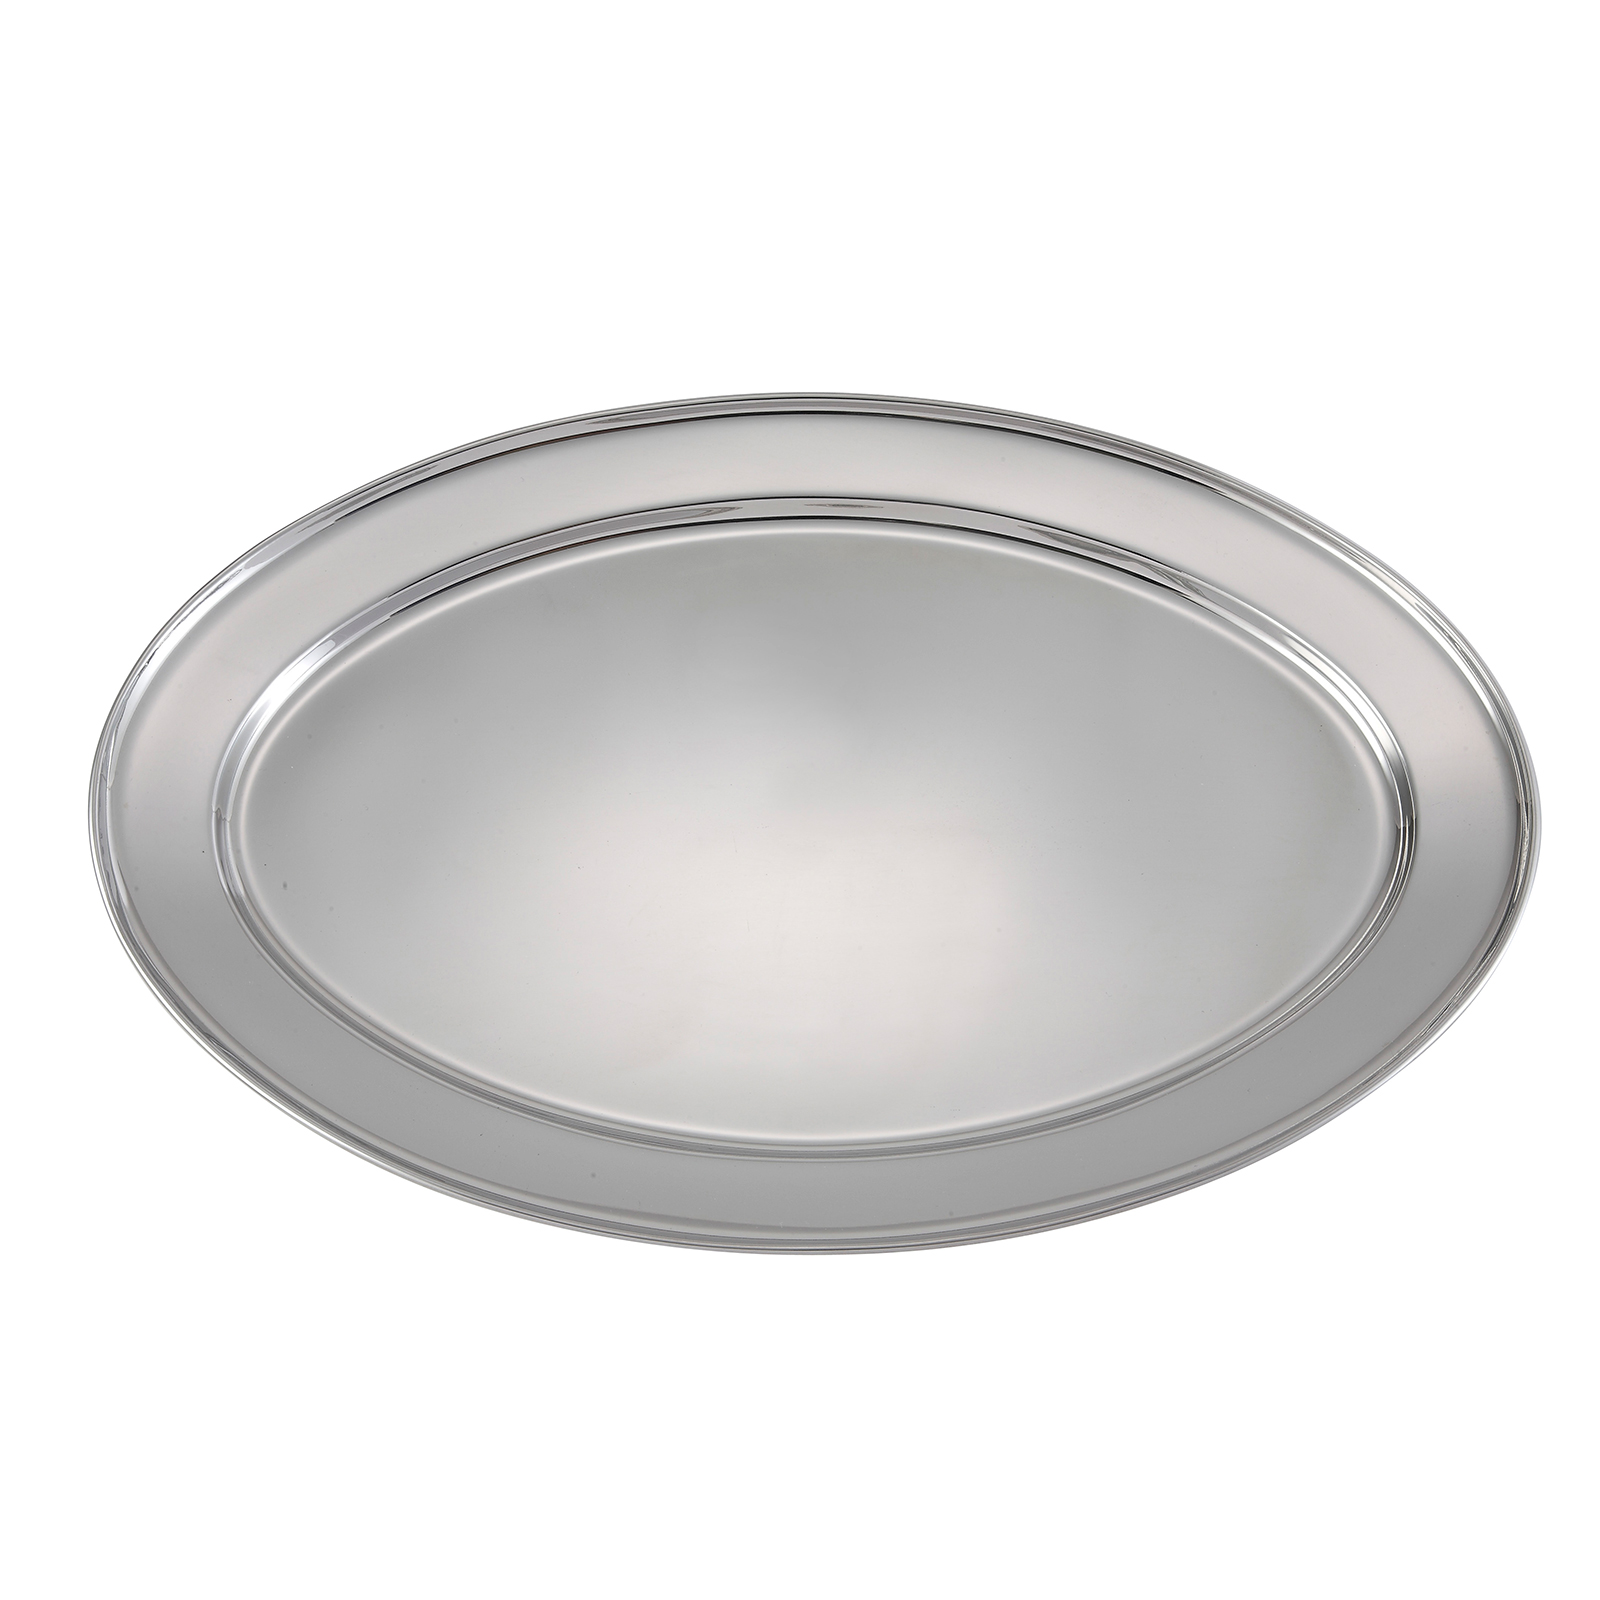 Winco OPL-22 platter, stainless steel